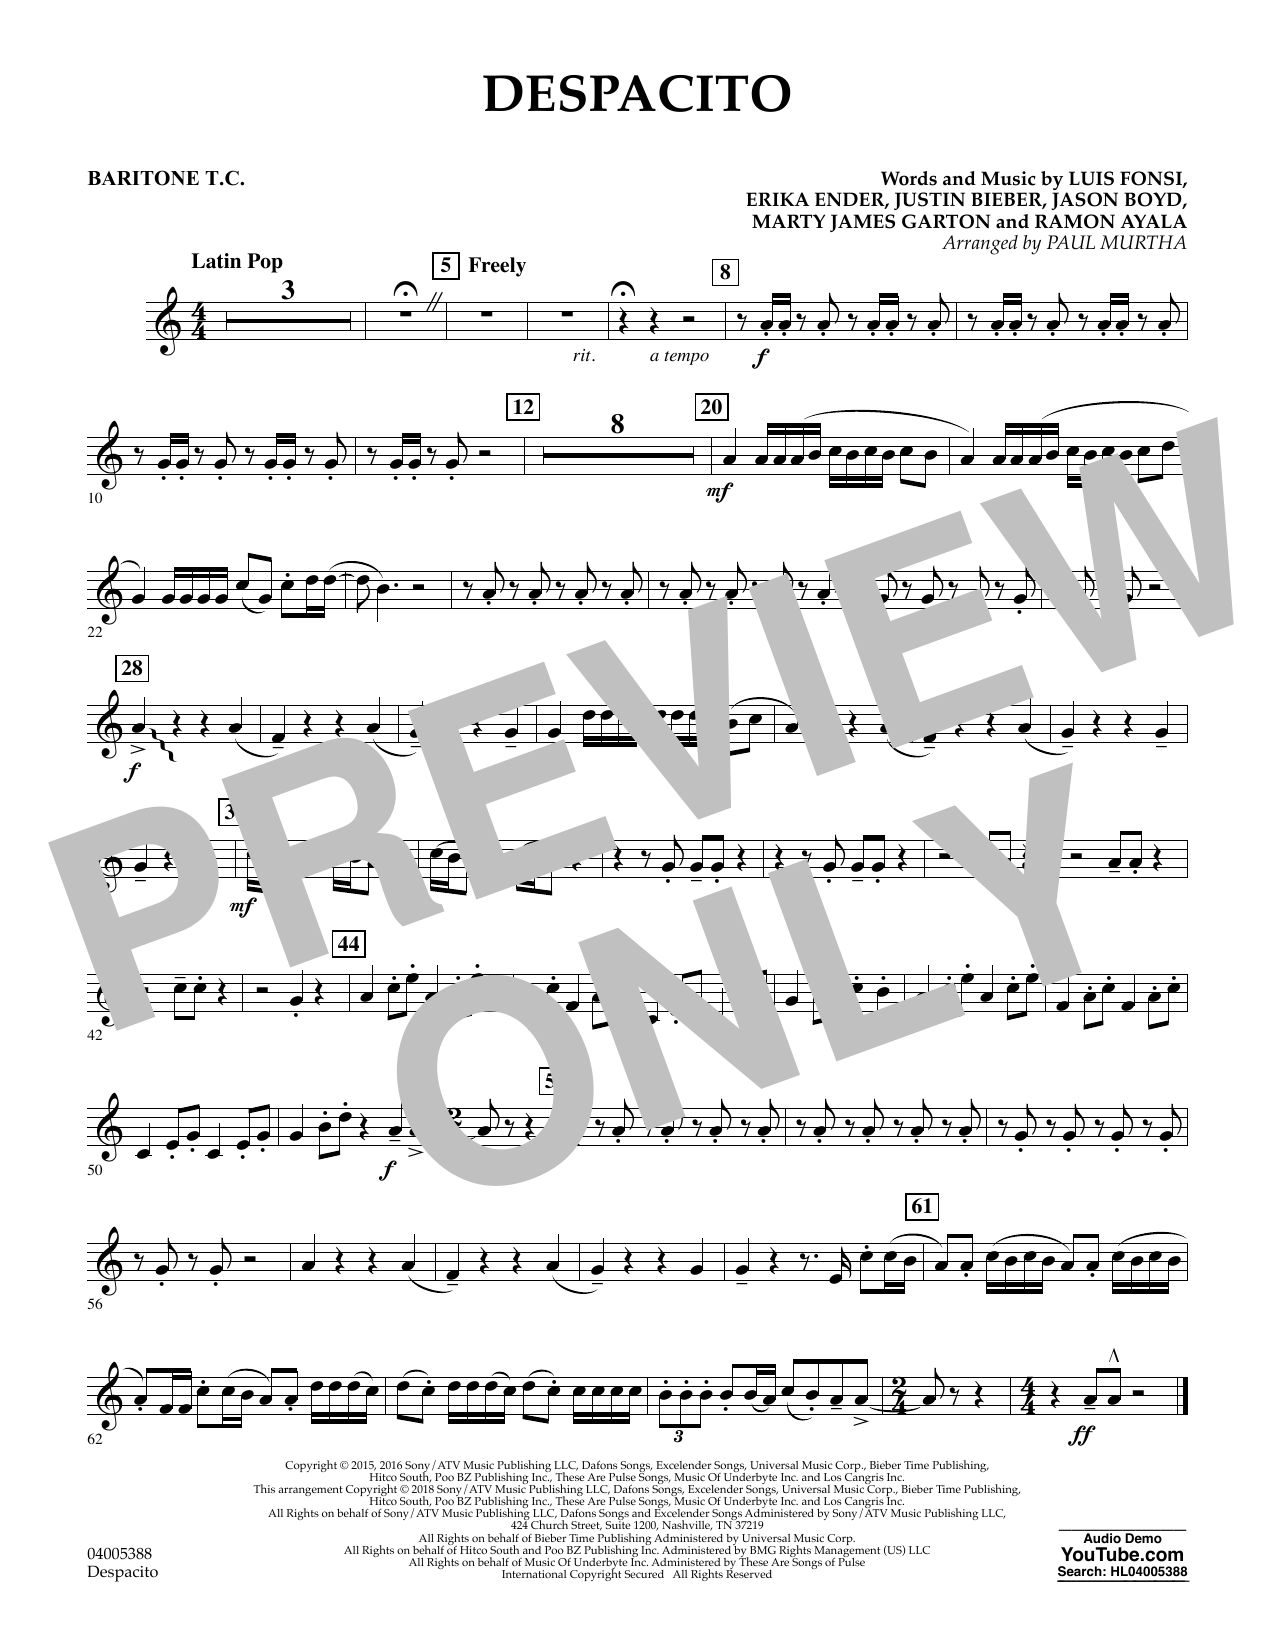 Luis Fonsi Despacito (feat. Daddy Yankee) (arr. Paul Murtha) - Baritone T.C. sheet music notes and chords. Download Printable PDF.